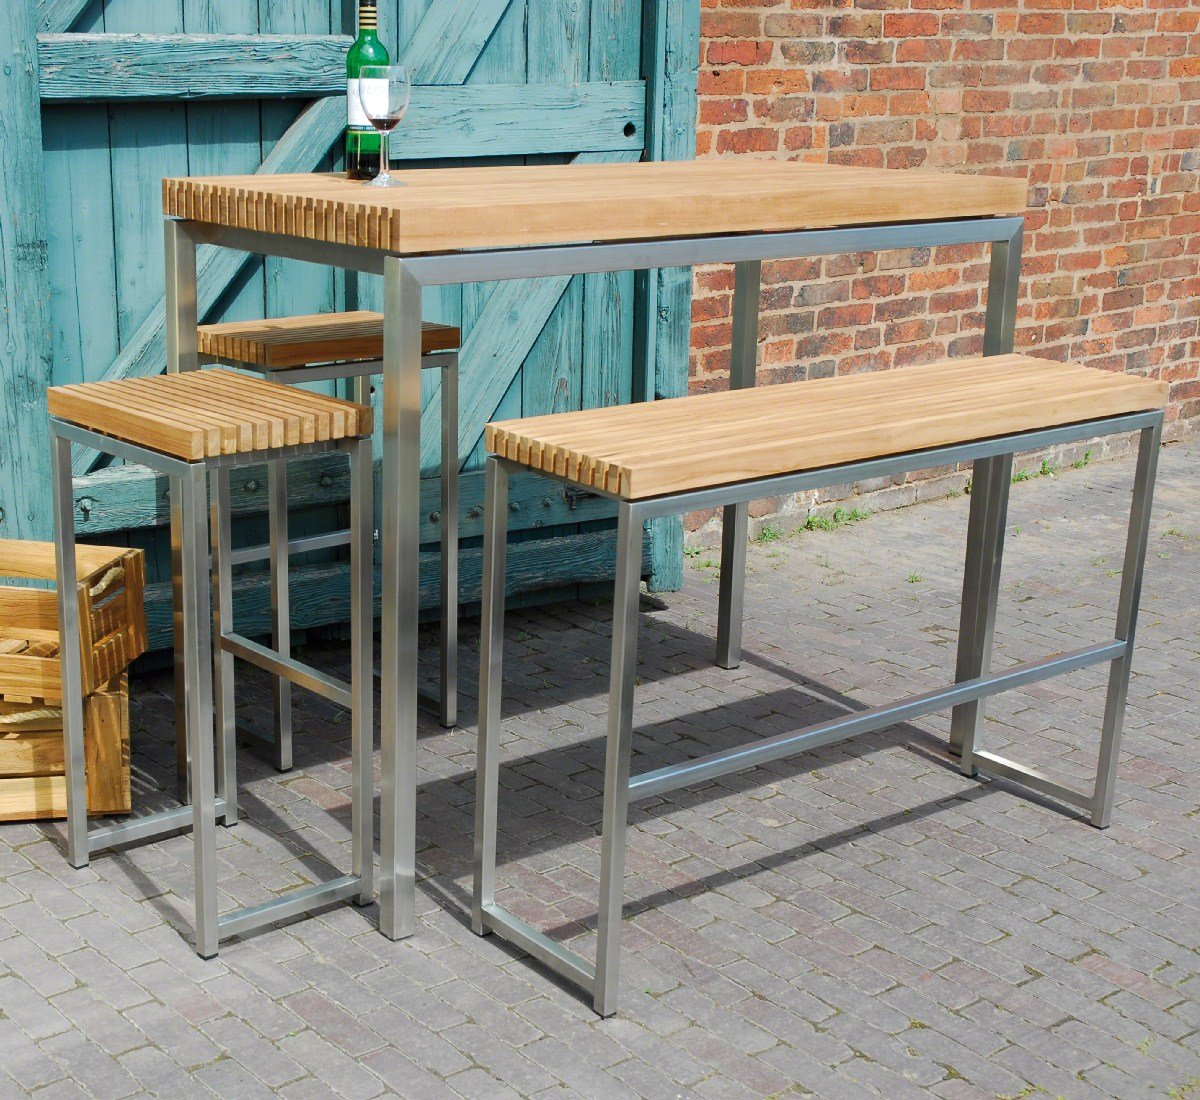 Ingarden Teak Garden Bar Table, High Benches U0026 High Bar Stools:  Amazon.co.uk: Garden U0026 Outdoors